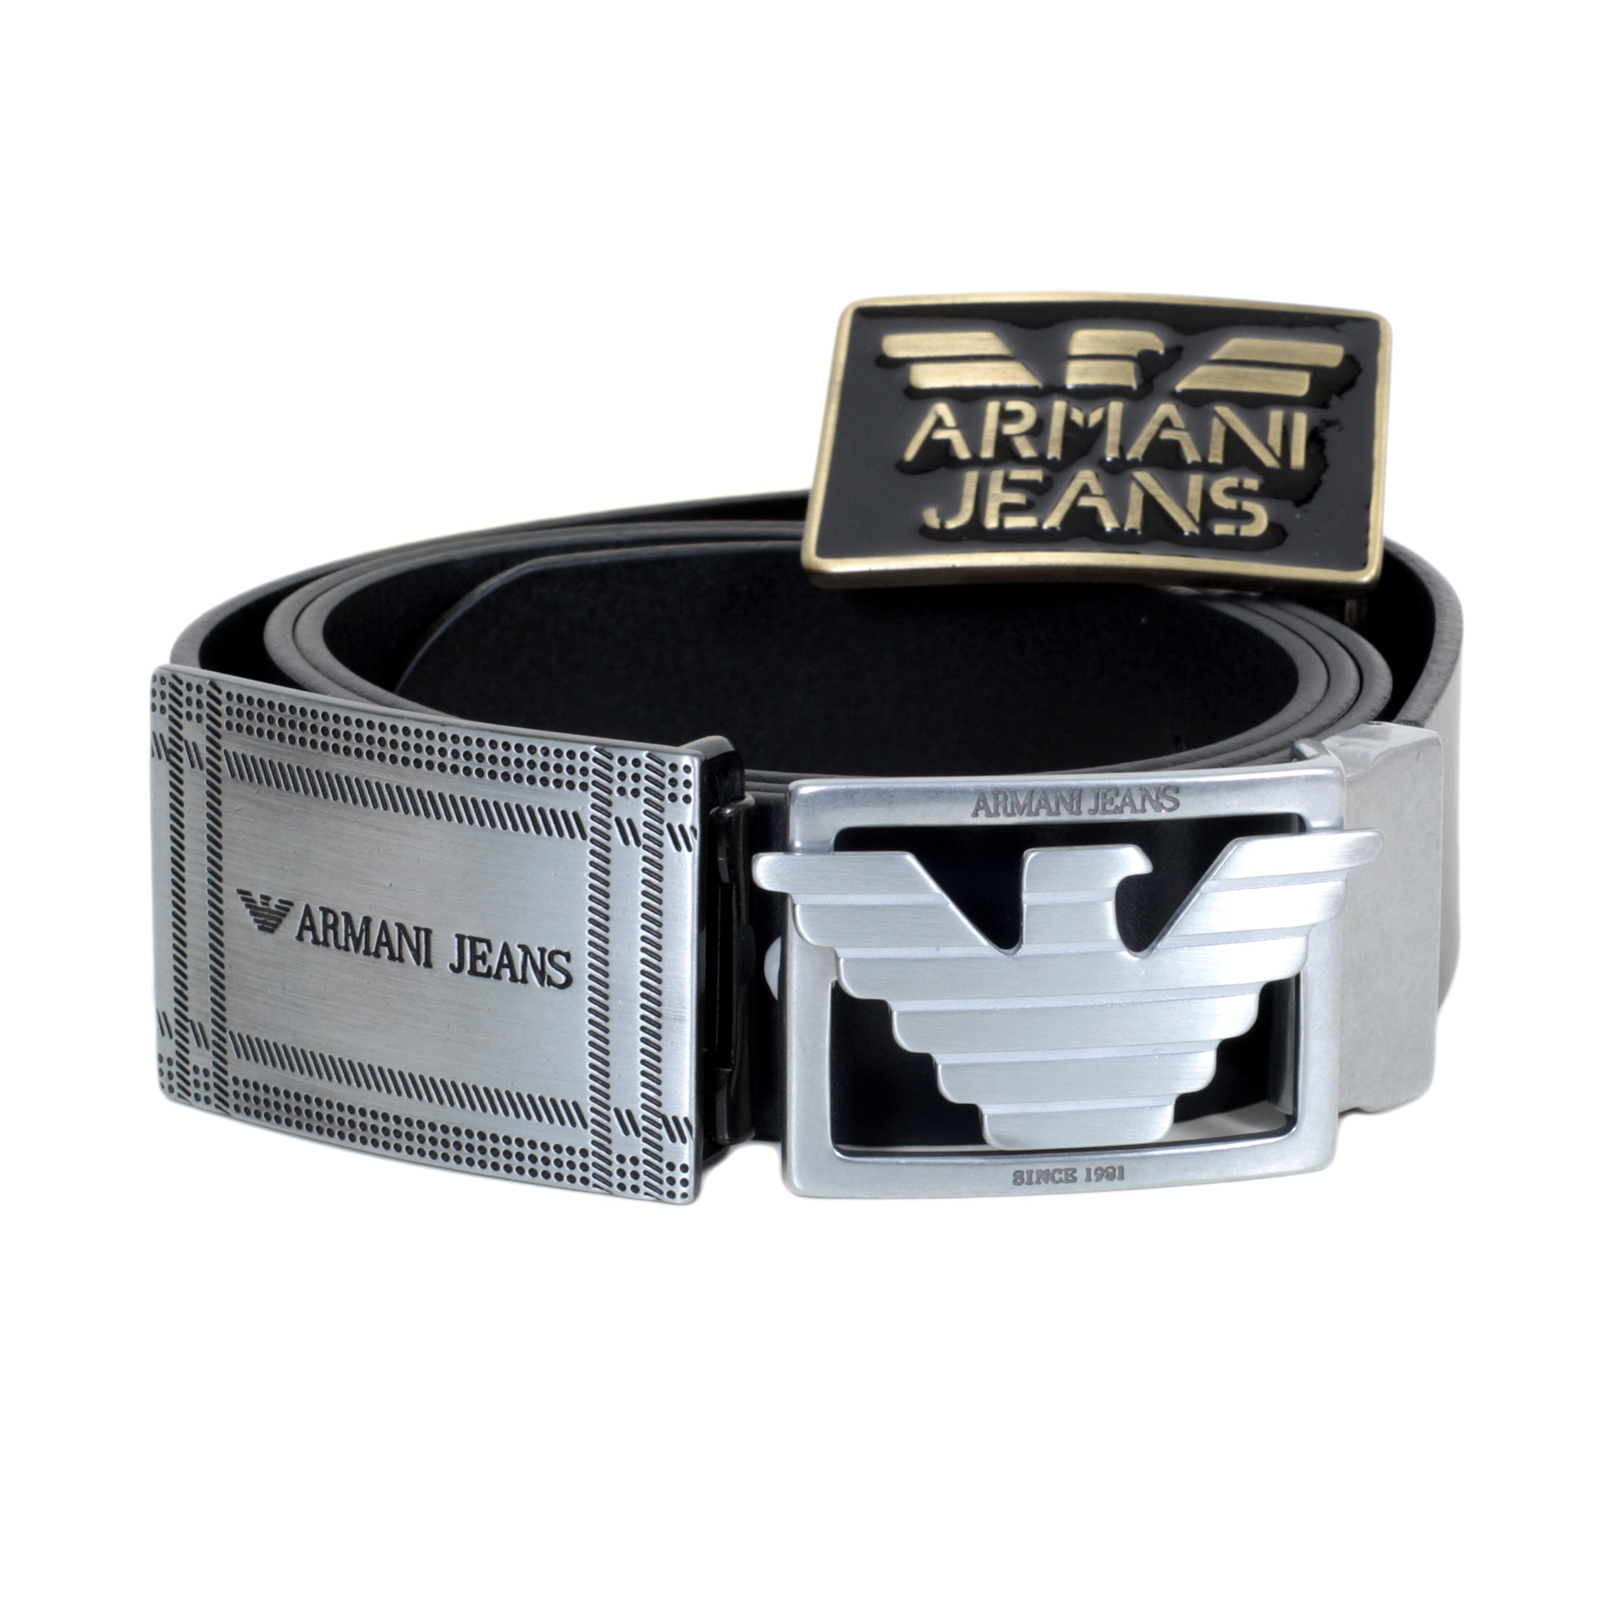 723da31c Armani Jeans Black Leather Belt with Smooth Leather Finish and 3  Interchangeable Buckles AJM6484